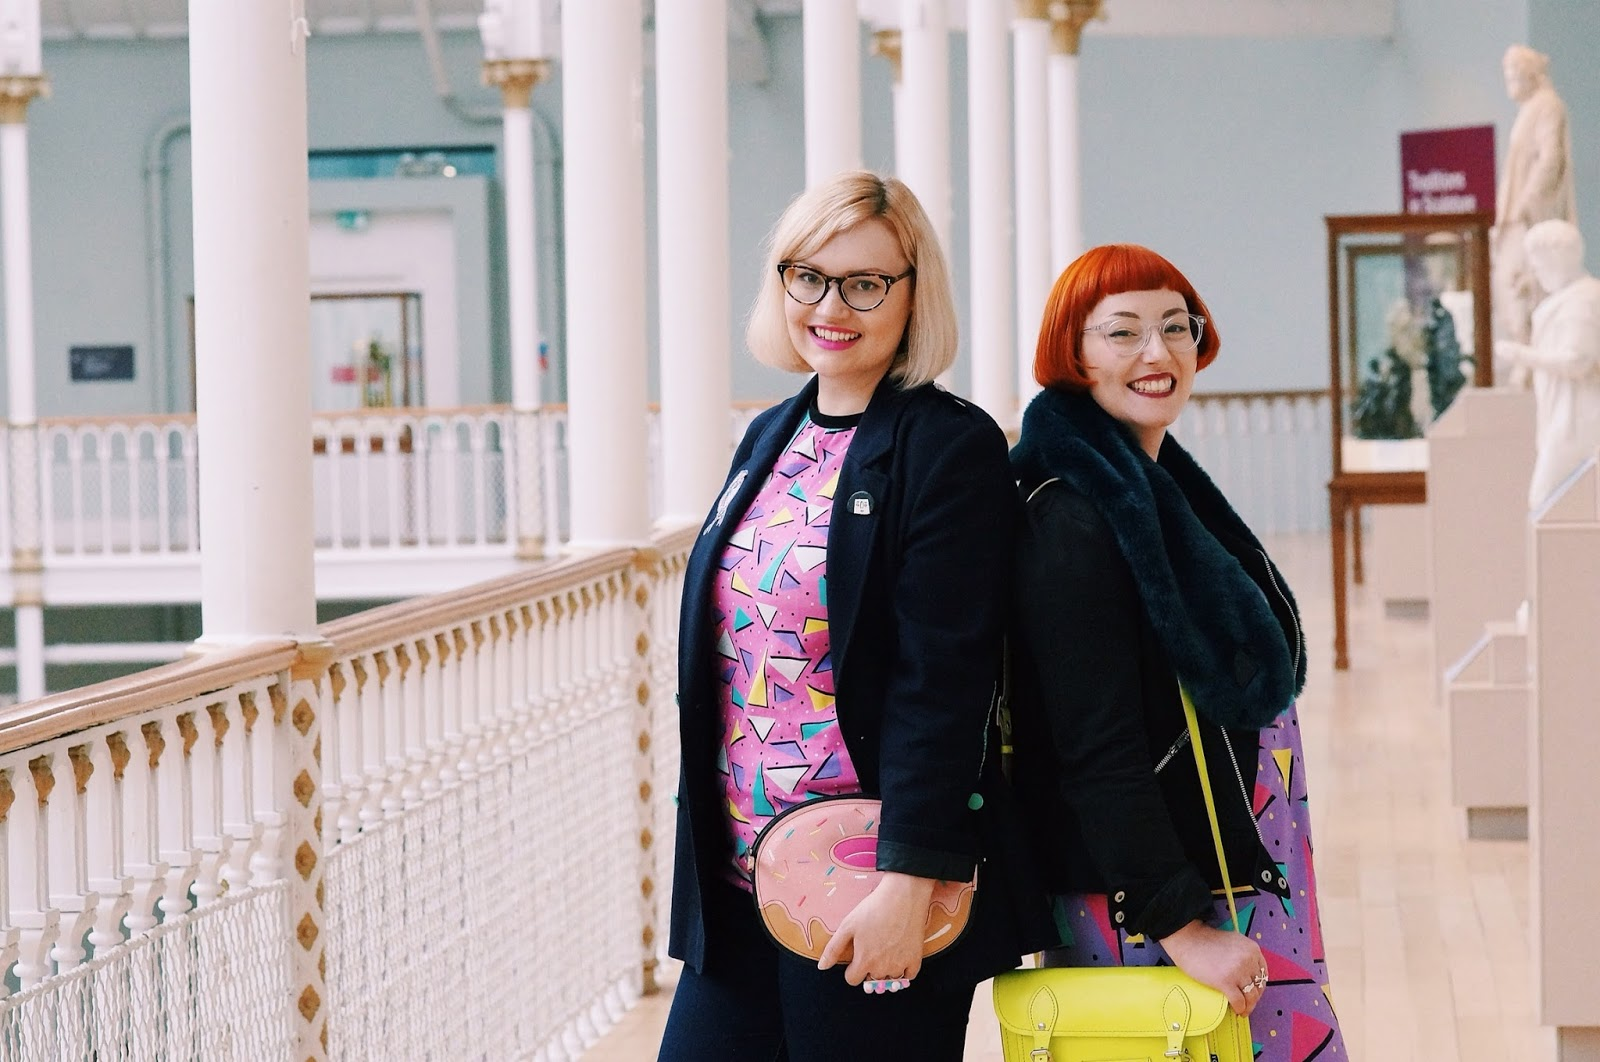 Helen and Kimberley, Wardrobe Conversations, Boya Shen, moveit video project, YouTube, National Museum of Scotland, Dreamland Clothing, JACKet by Jill Skulina, jose Pankhurst, Yoshi bag, Nicely Eclectic vintage, #scotstreetstyle, #edfashion, photoshoot, Scottish bloggers,